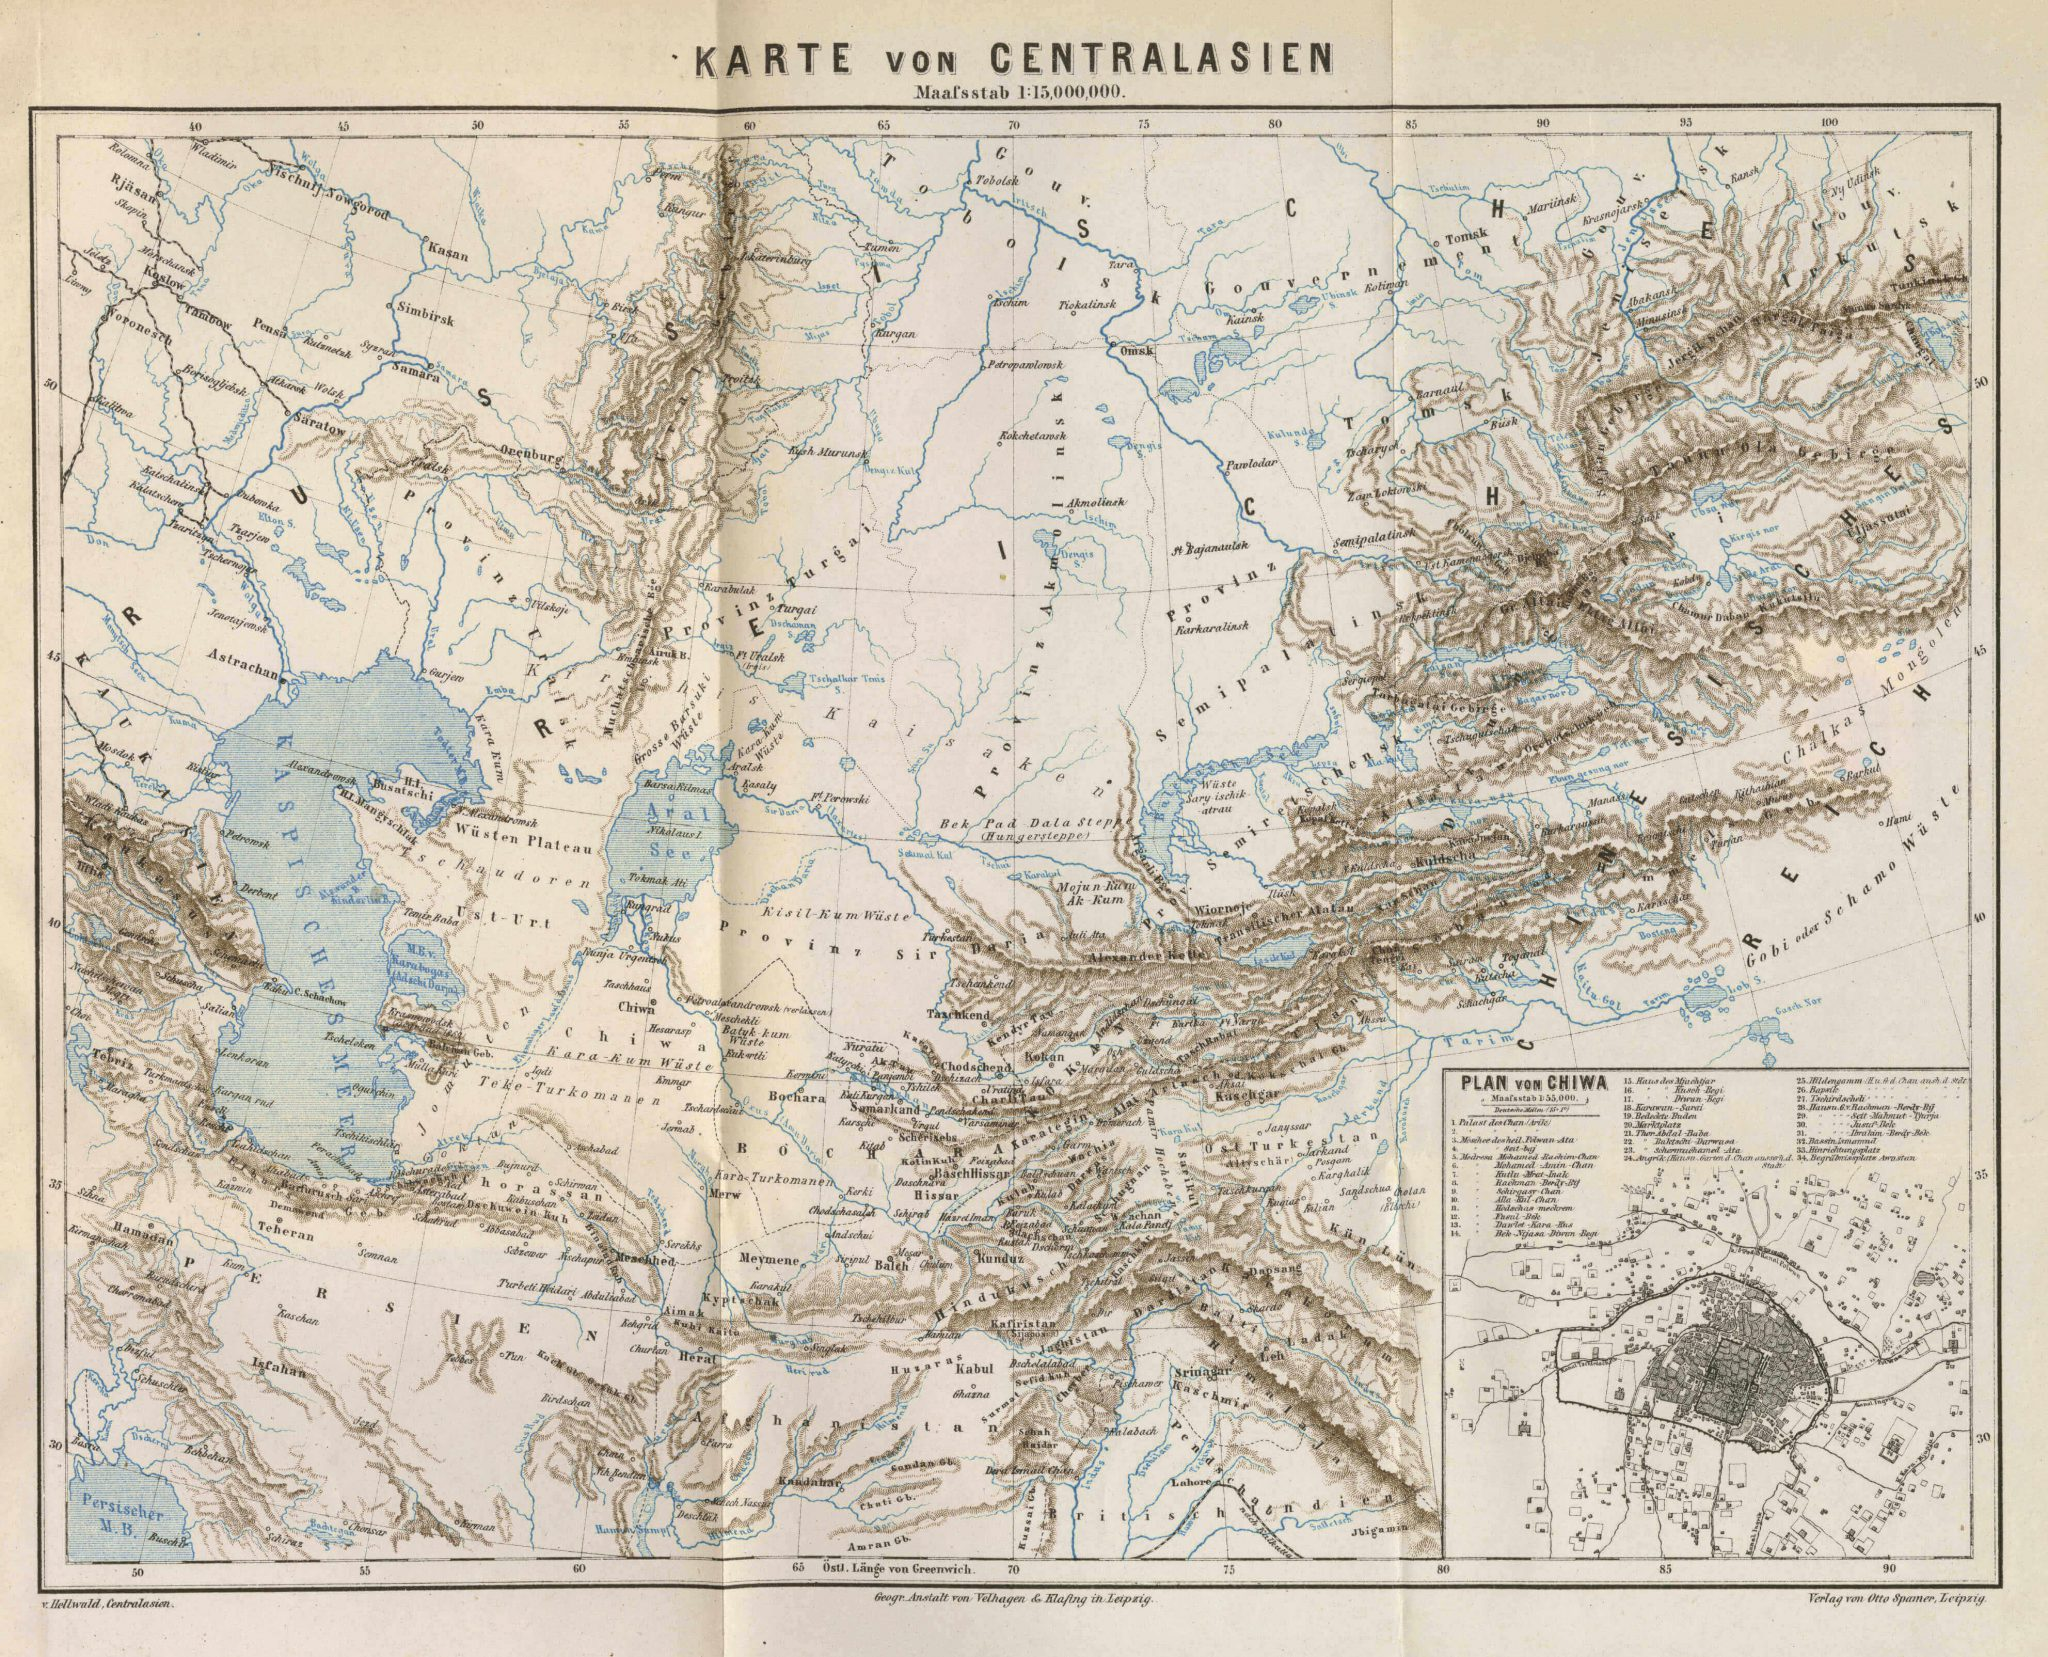 Map of Central Asia 1880